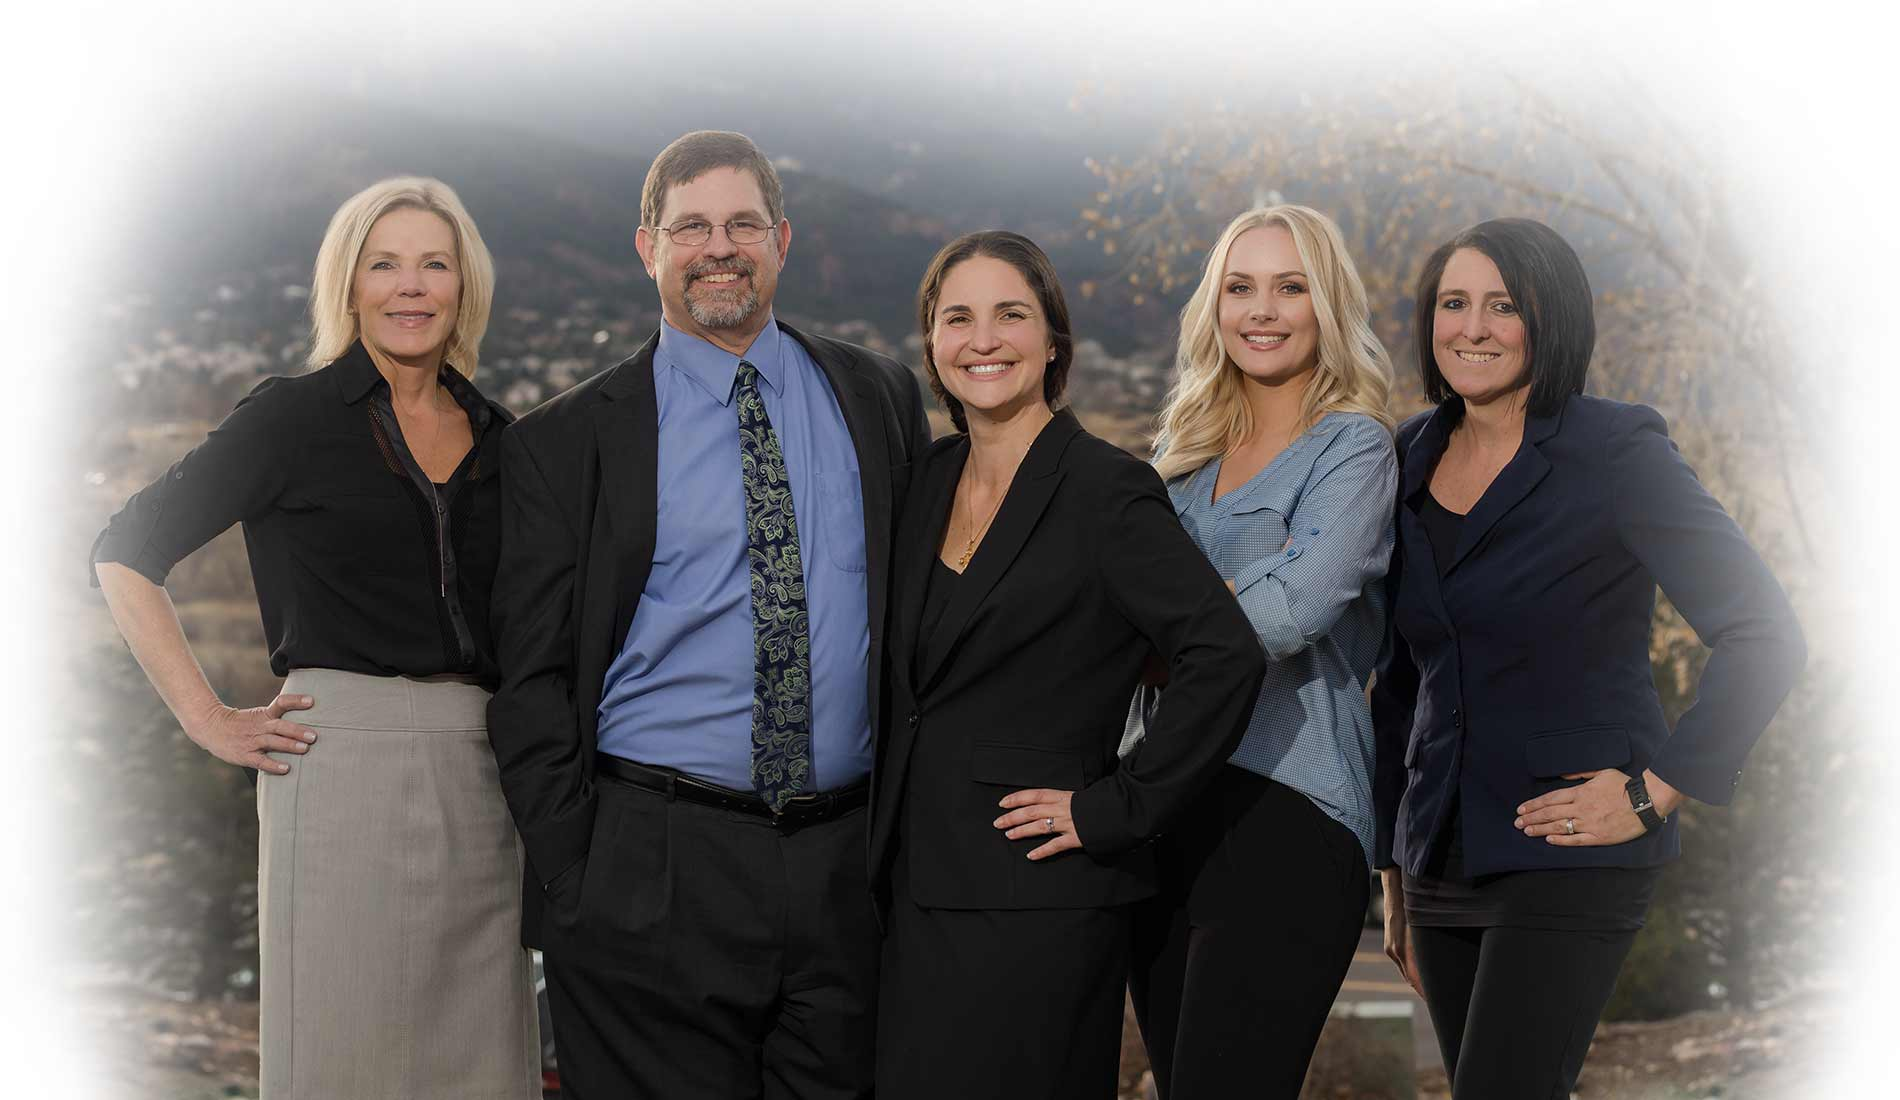 The Webster Law Firm Team photo